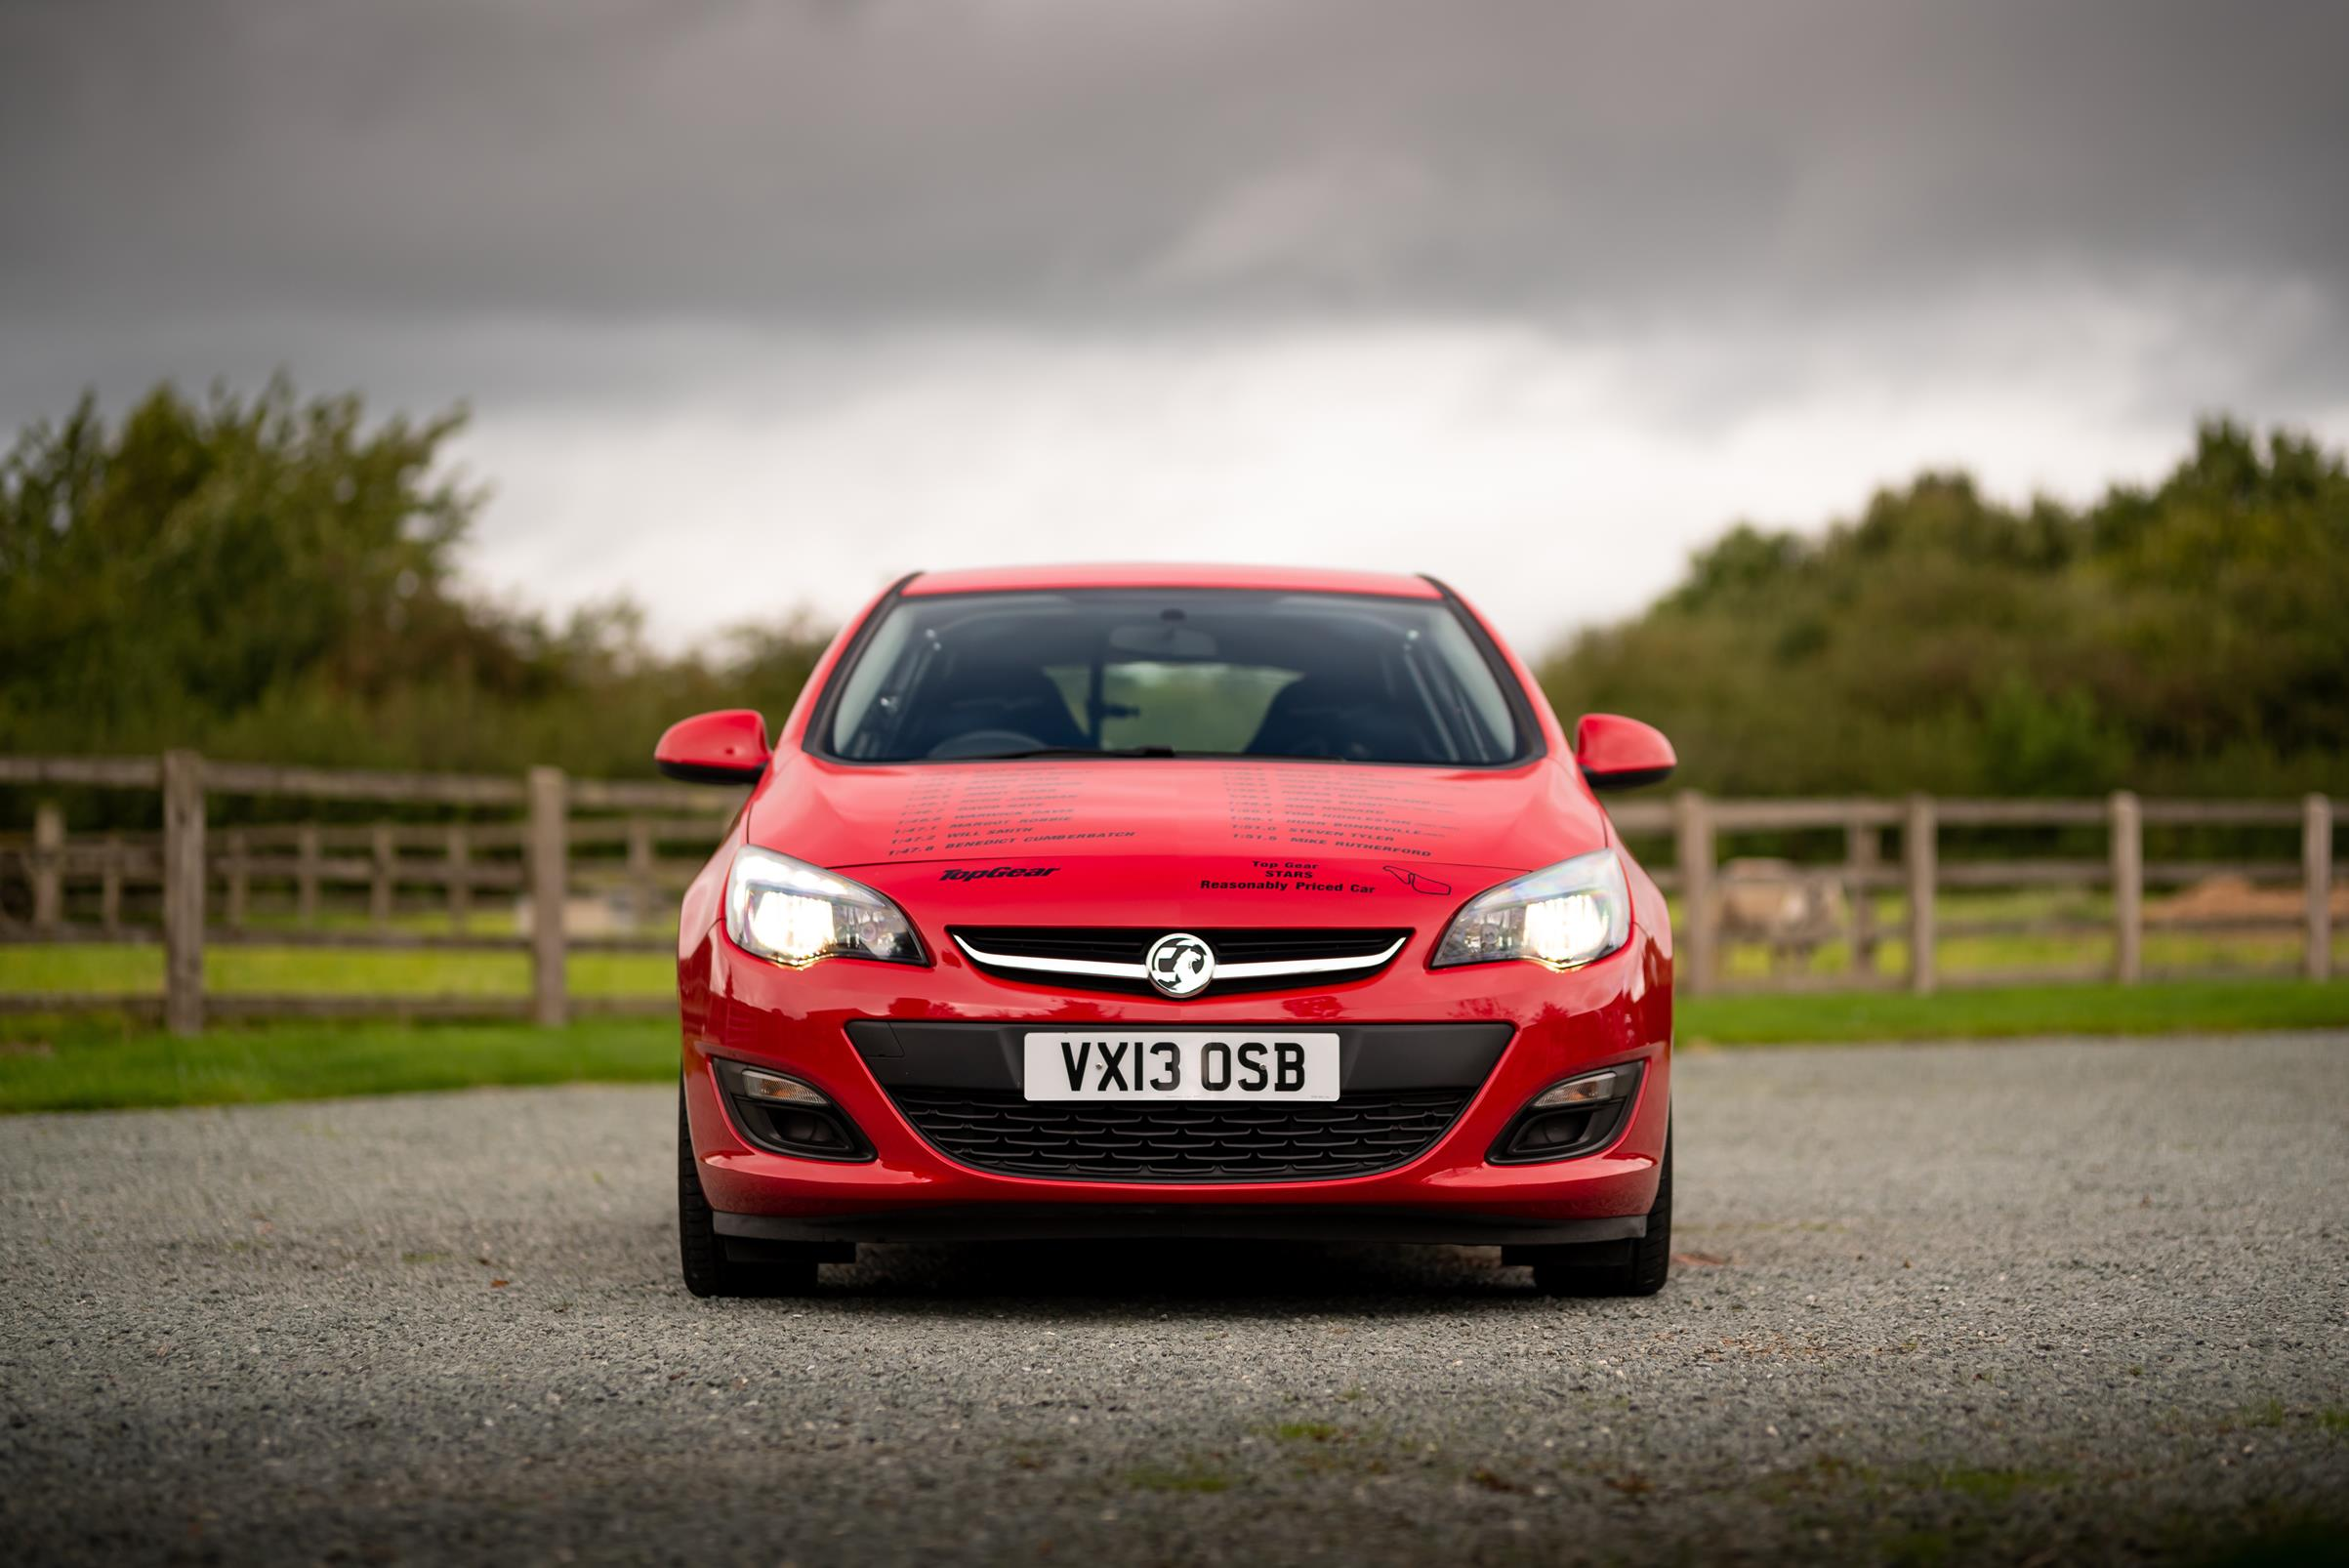 Vauxhall-Astra-Reasonably-Priced-Car-for-sale-8